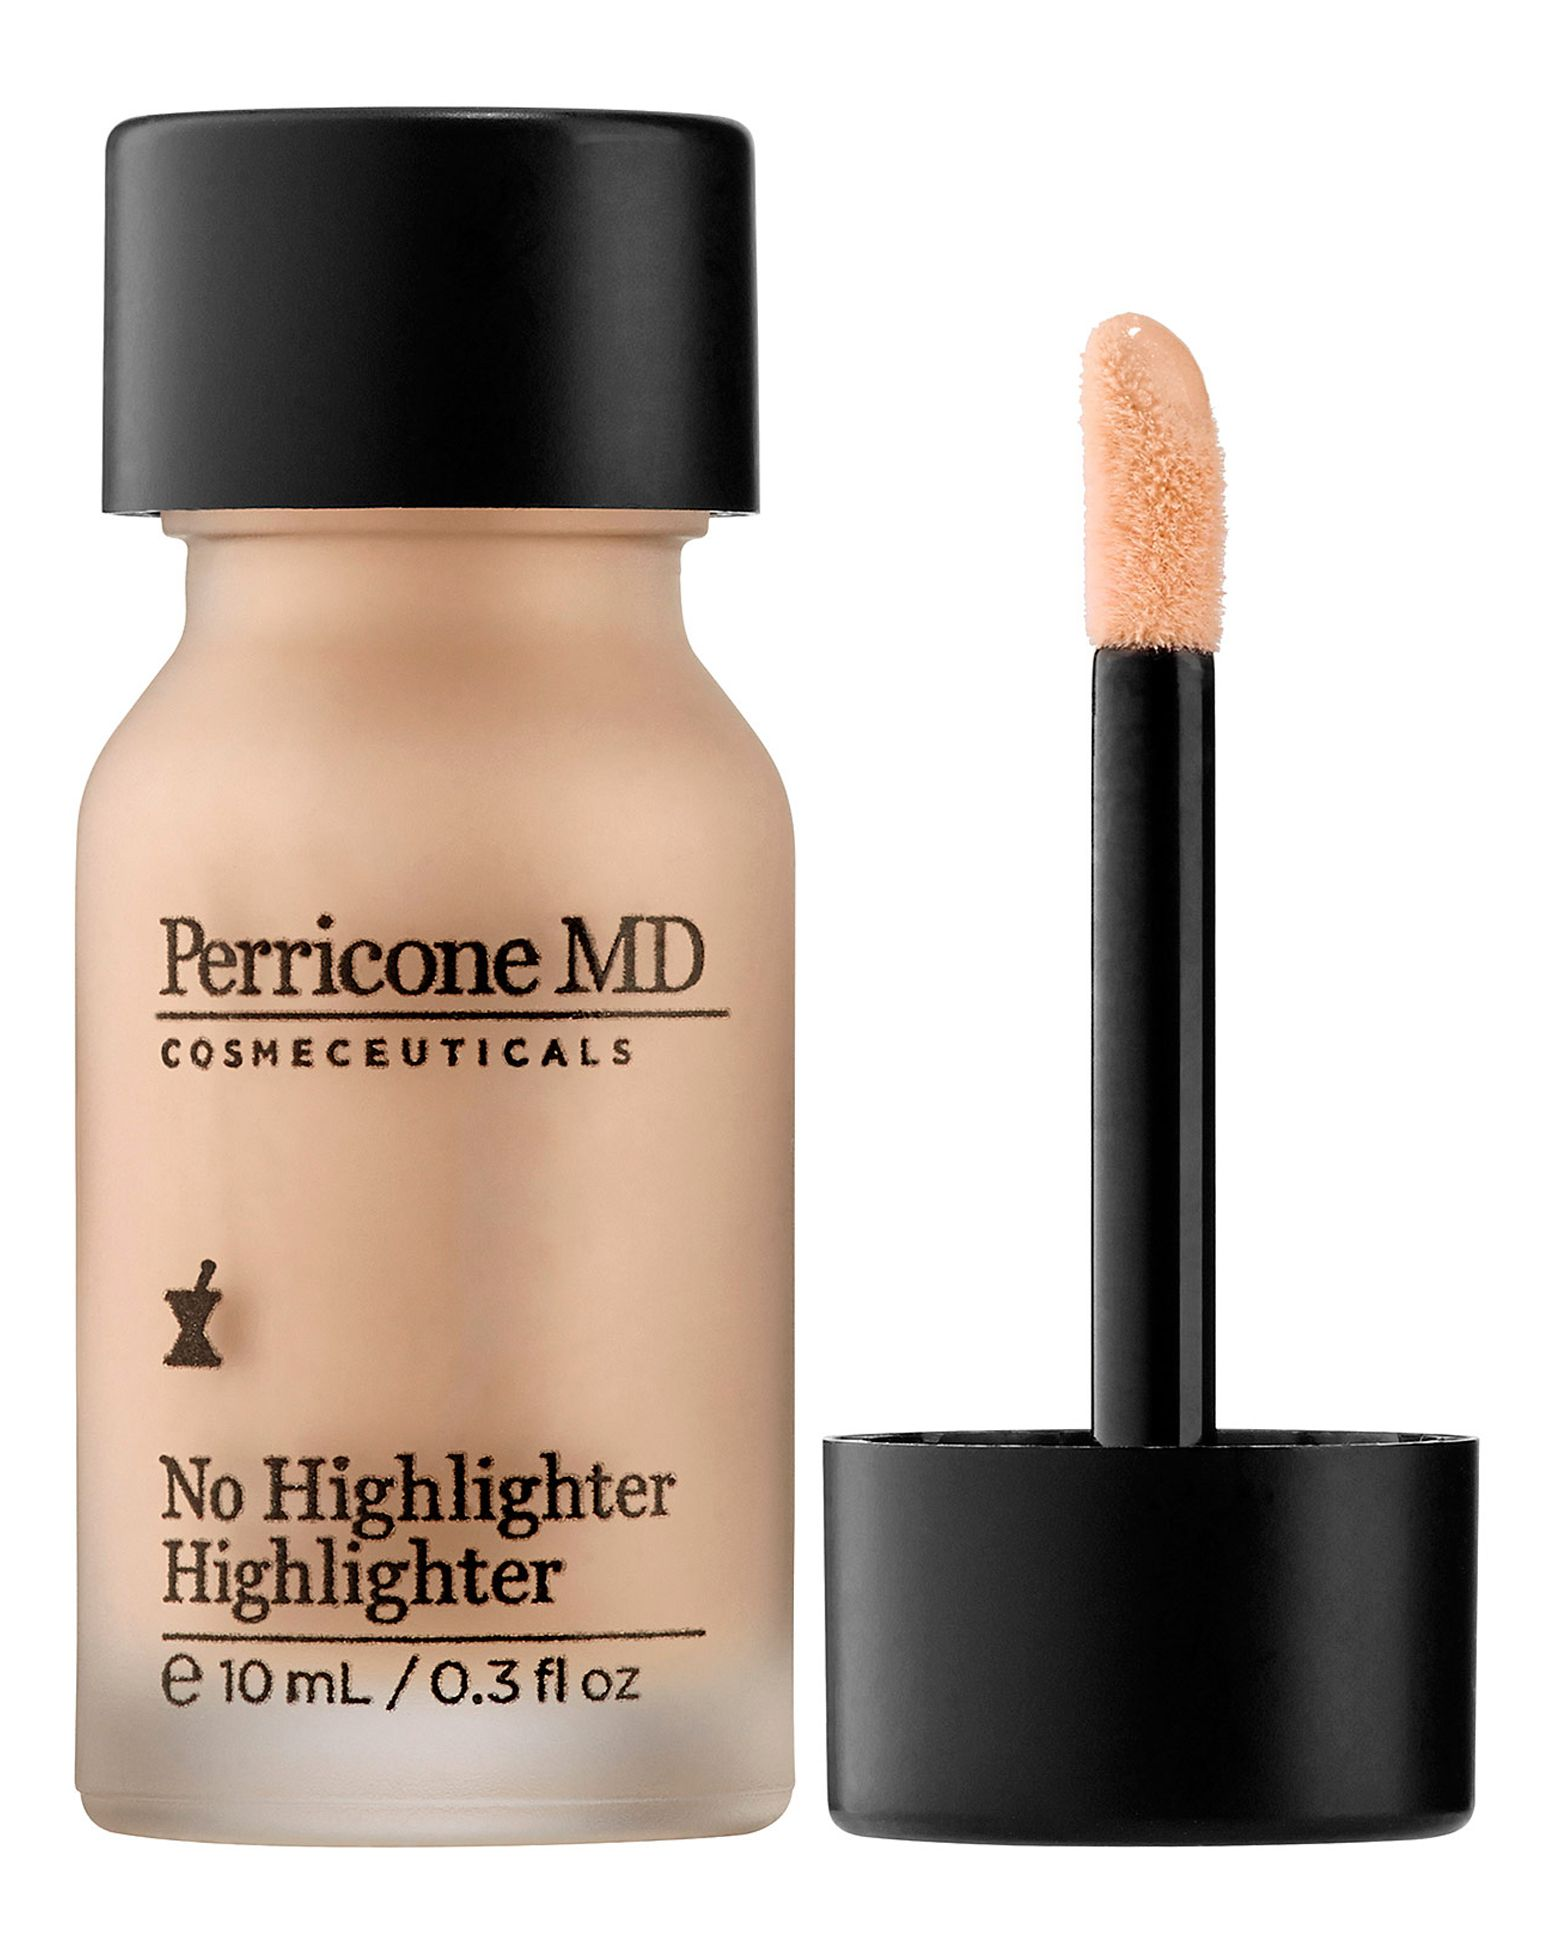 No Highlighter Highlighter by Perricone MD Highlighter